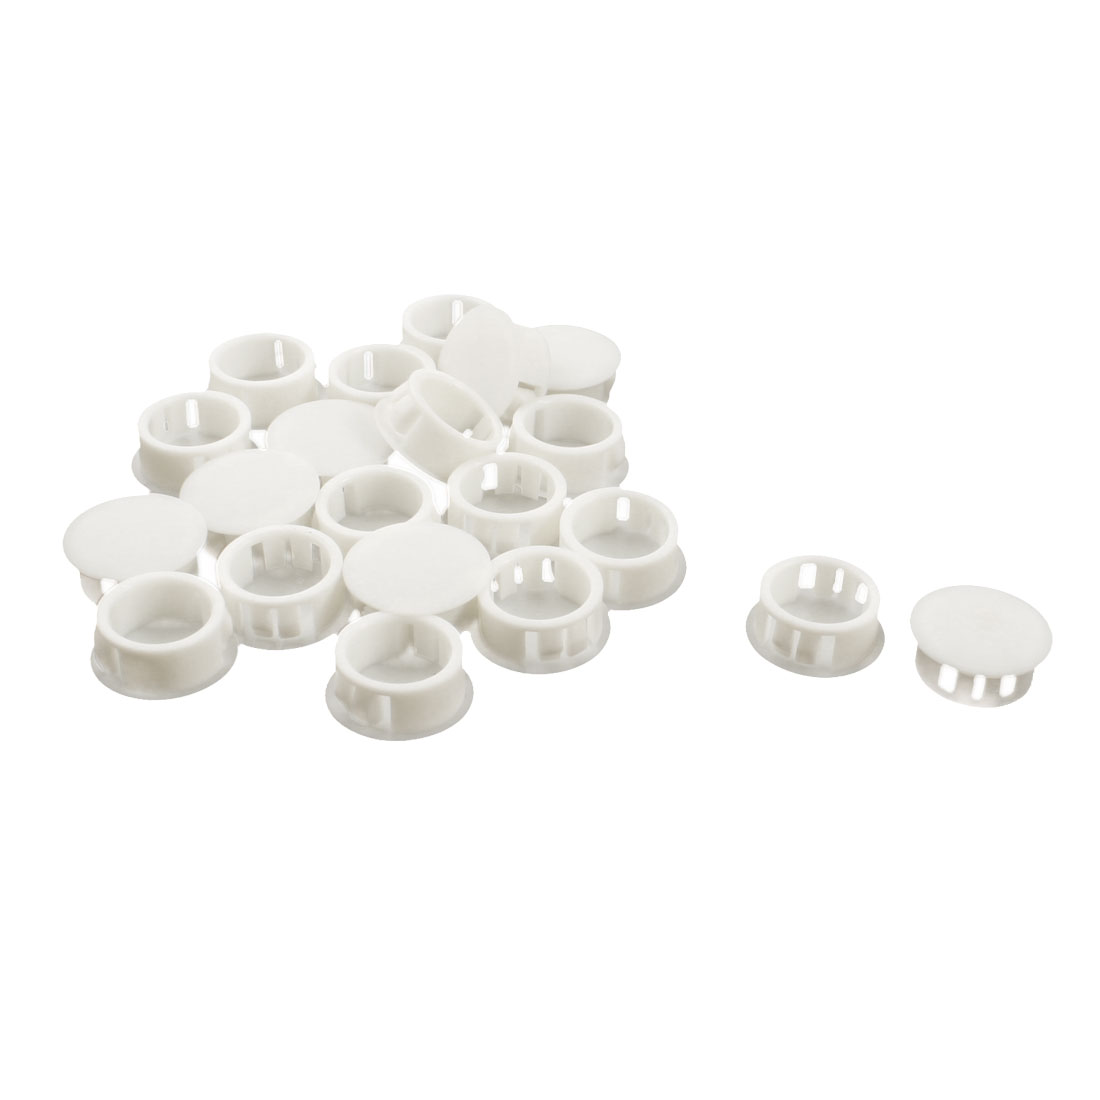 20PCS SKT-20 20.1mm Insulated White Plastic Snap in Mount Domed Blank Lock Hole Plug Cover Harness Fastener